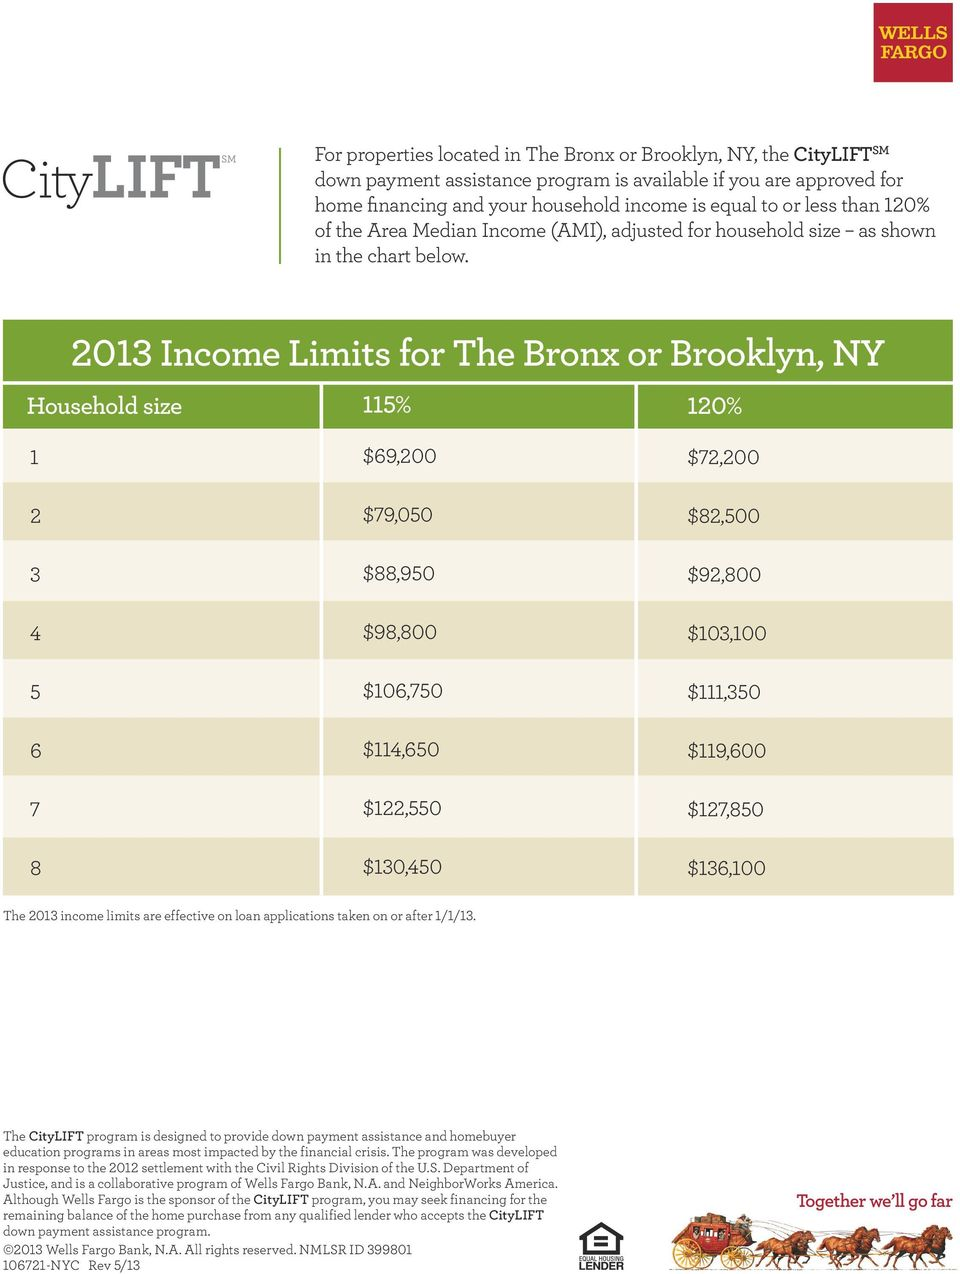 2013 Income Limits for The Bronx or Brooklyn, NY Household size 1 $69,200 $72,200 2 $79,050 $82,500 3 $88,950 $92,800 4 $98,800 $103,100 5 $106,750 $111,350 6 $114,650 $119,600 7 $122,550 $127,850 8